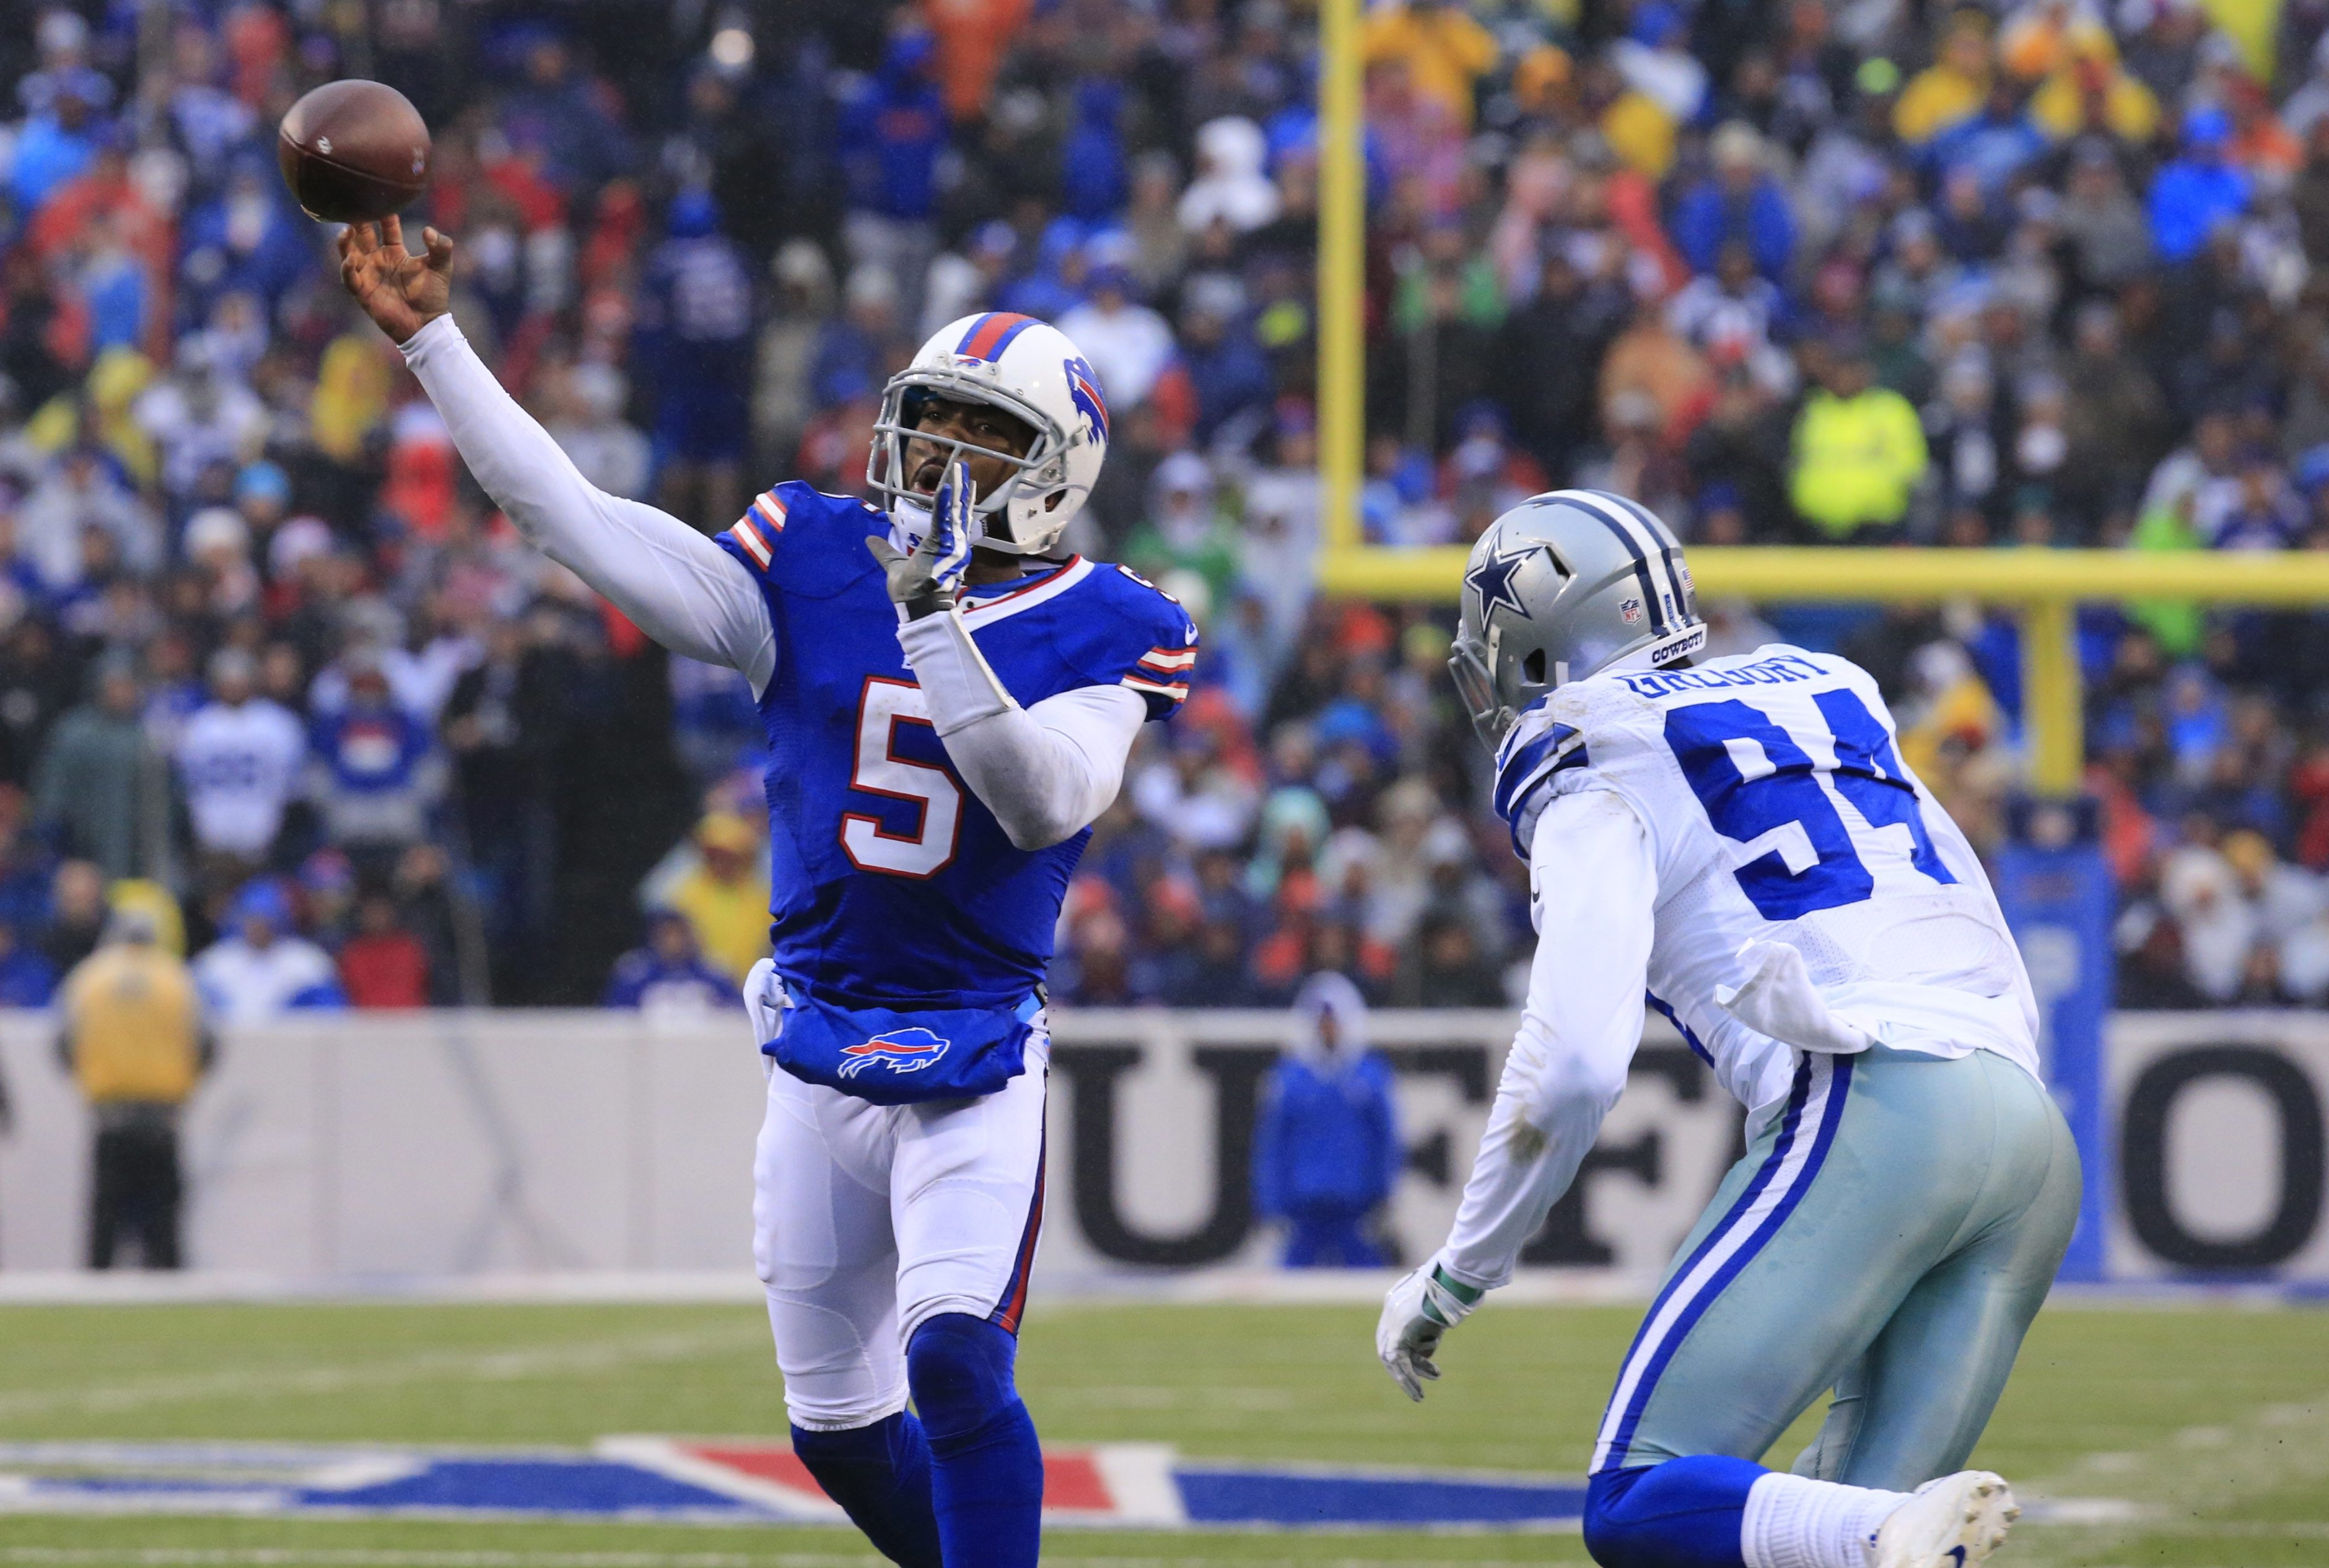 Tyrod Taylor needs to prove himself more to deserve a bigger contract.